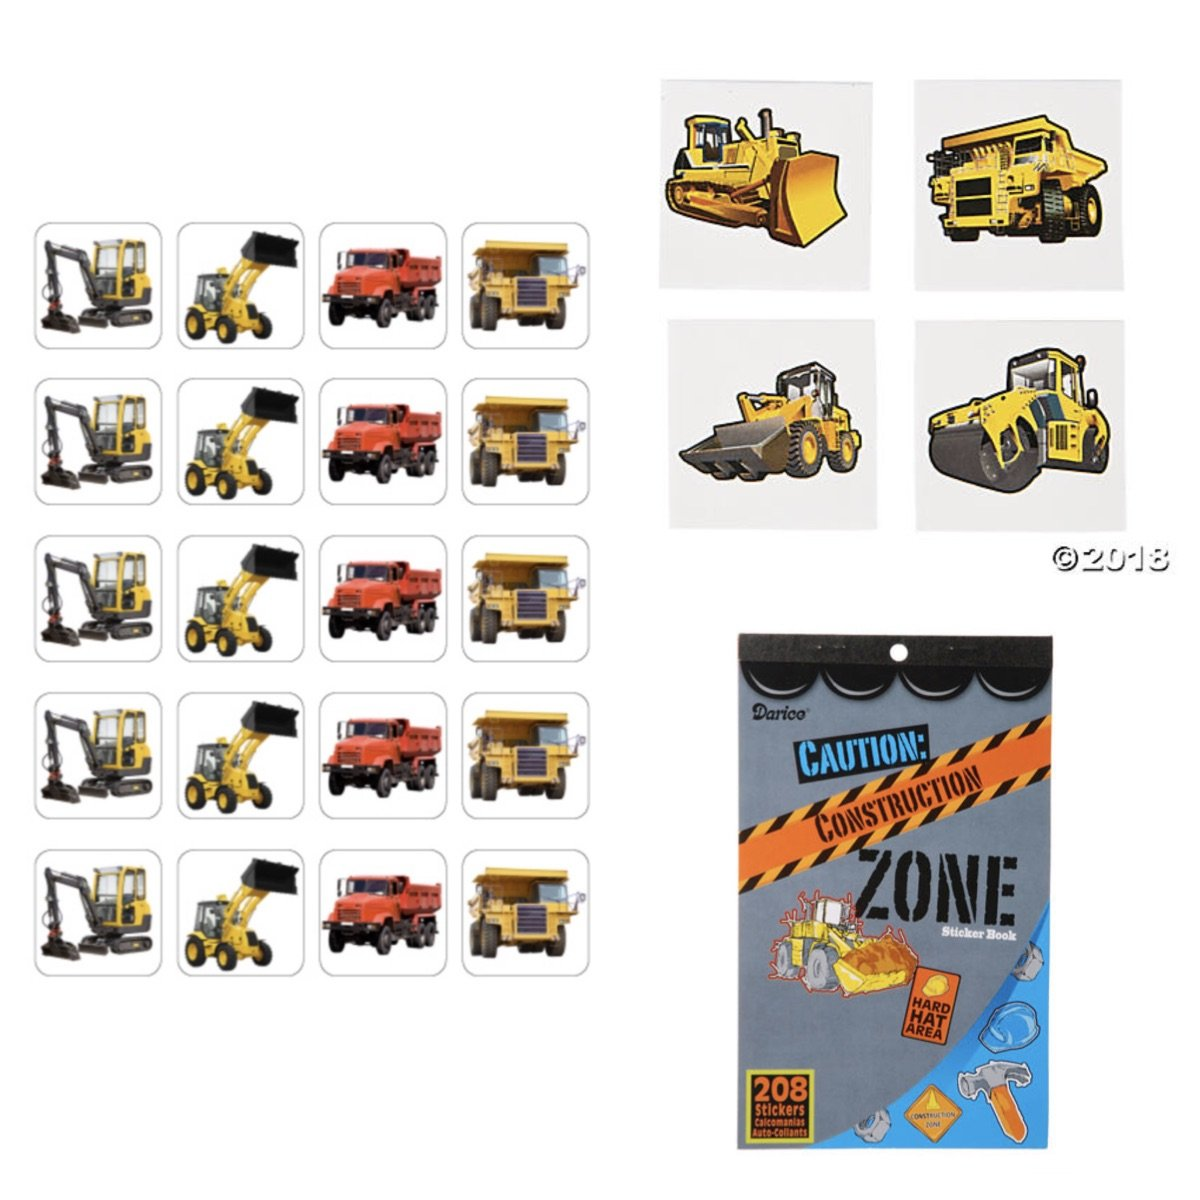 72 TATTOOS /& Sticker Book with 208 Stickers BOY Birthday PARTIES BULLDOZER Dump Truck BACKHOE Party Favors CLASSROOM Teacher Rewards CONSTRUCTION Truck PARTY Favors 120 PHOTO Stickers